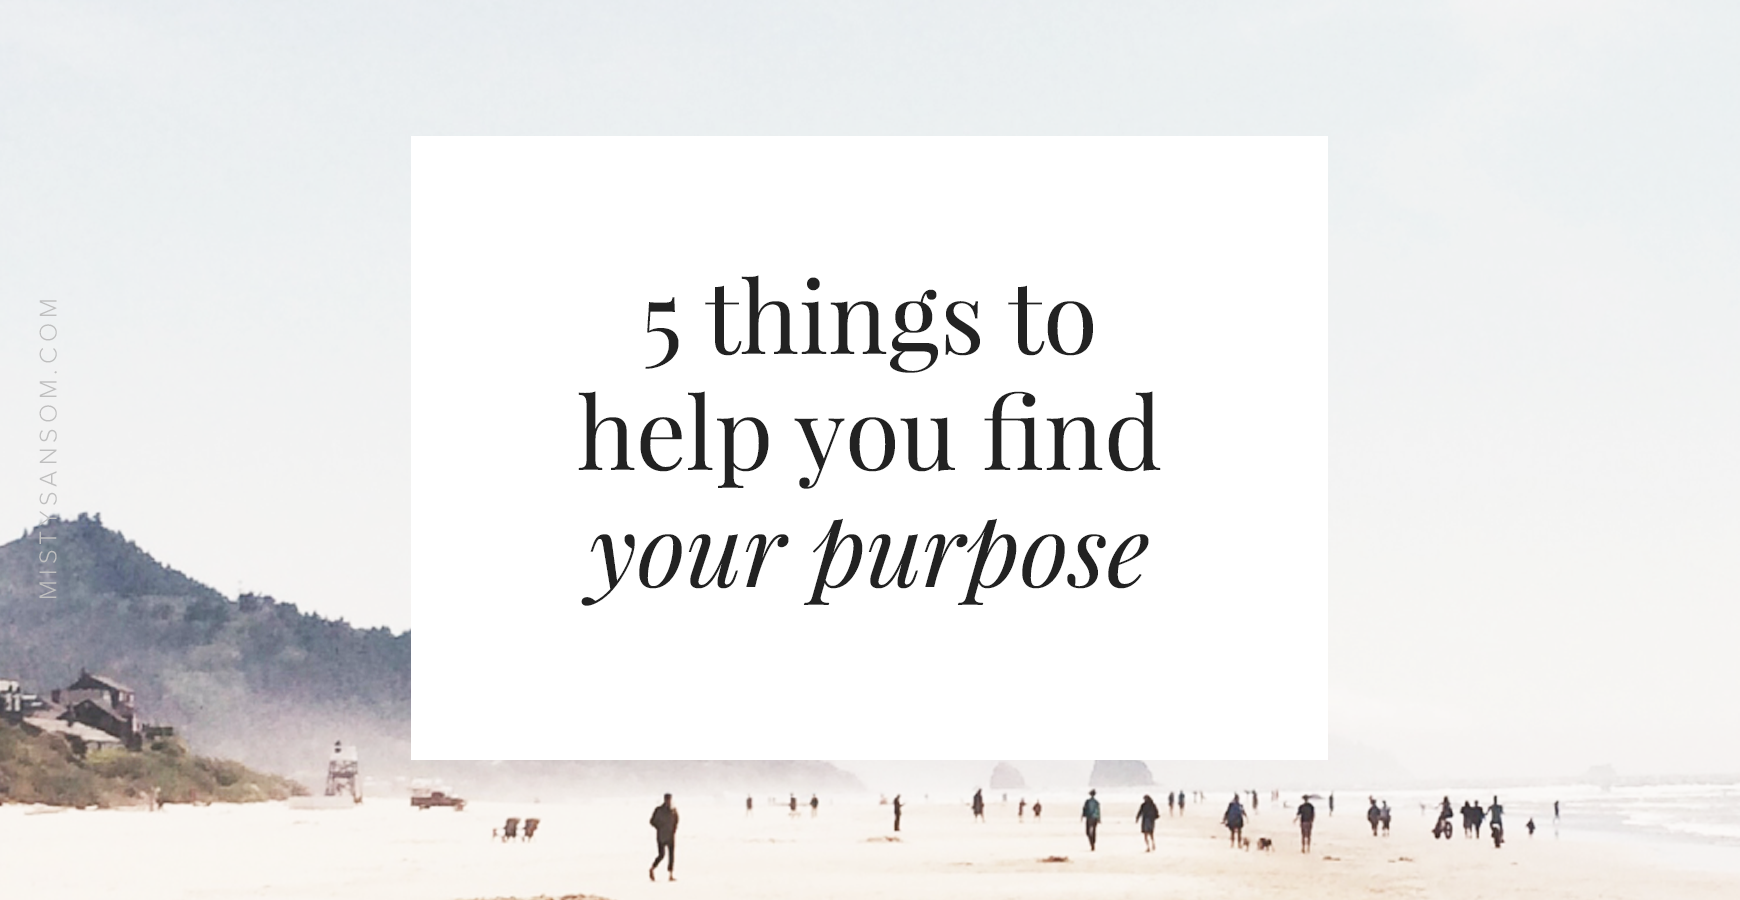 5-things-to-help-you-find-your-purpose.png